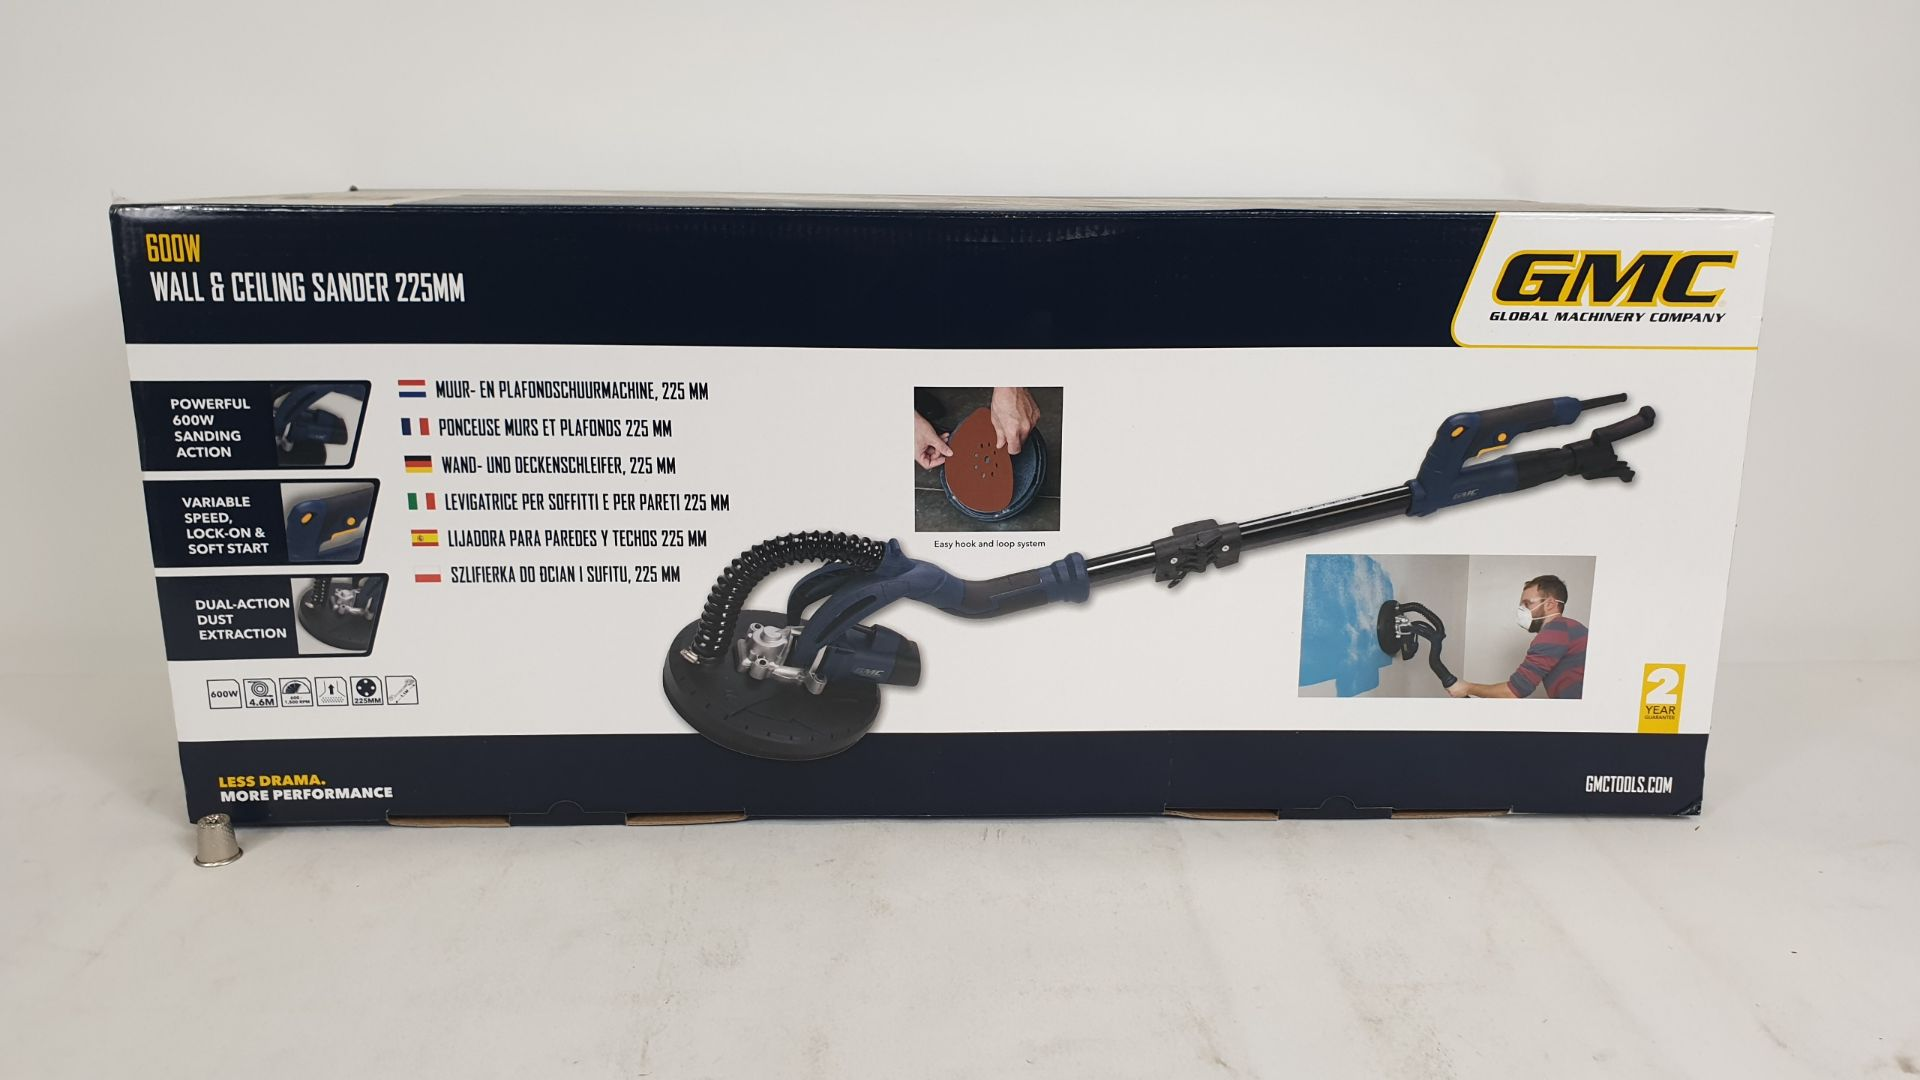 Lot 1558 - (LOT FOR THURSDAY 28TH MAY AUCTION) GMC 600W WALL AND CEILING SANDER 225M (PRODUCT CODE 264803) - (